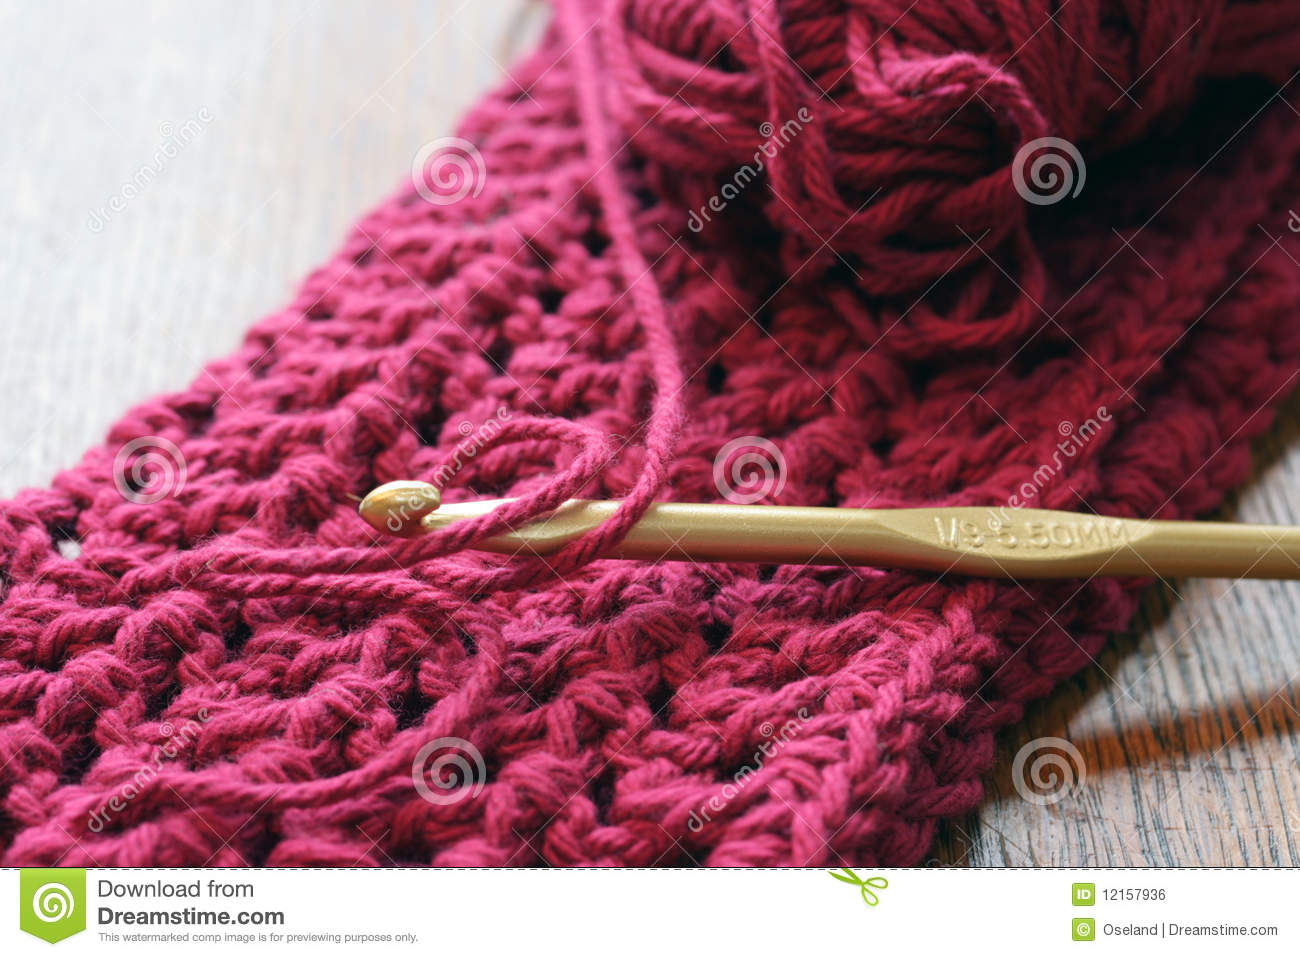 Free Crochet Yarn : crochet hook and yarn that has been crocheted into a double crocheted ...